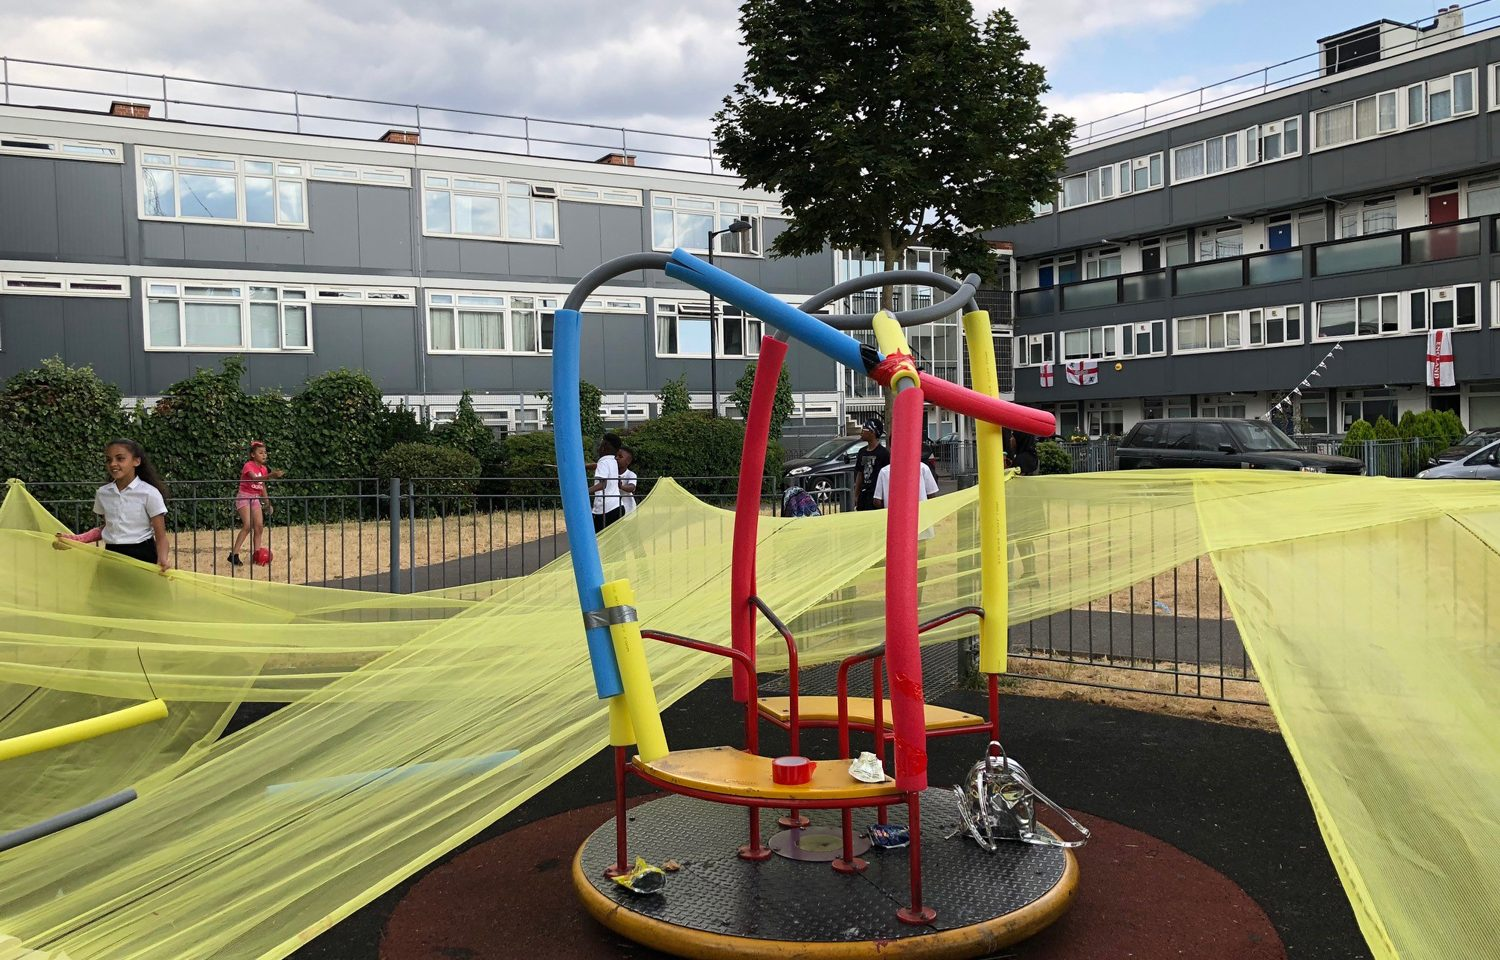 Shepherd Manyika Open Plan project on Elmington Playground